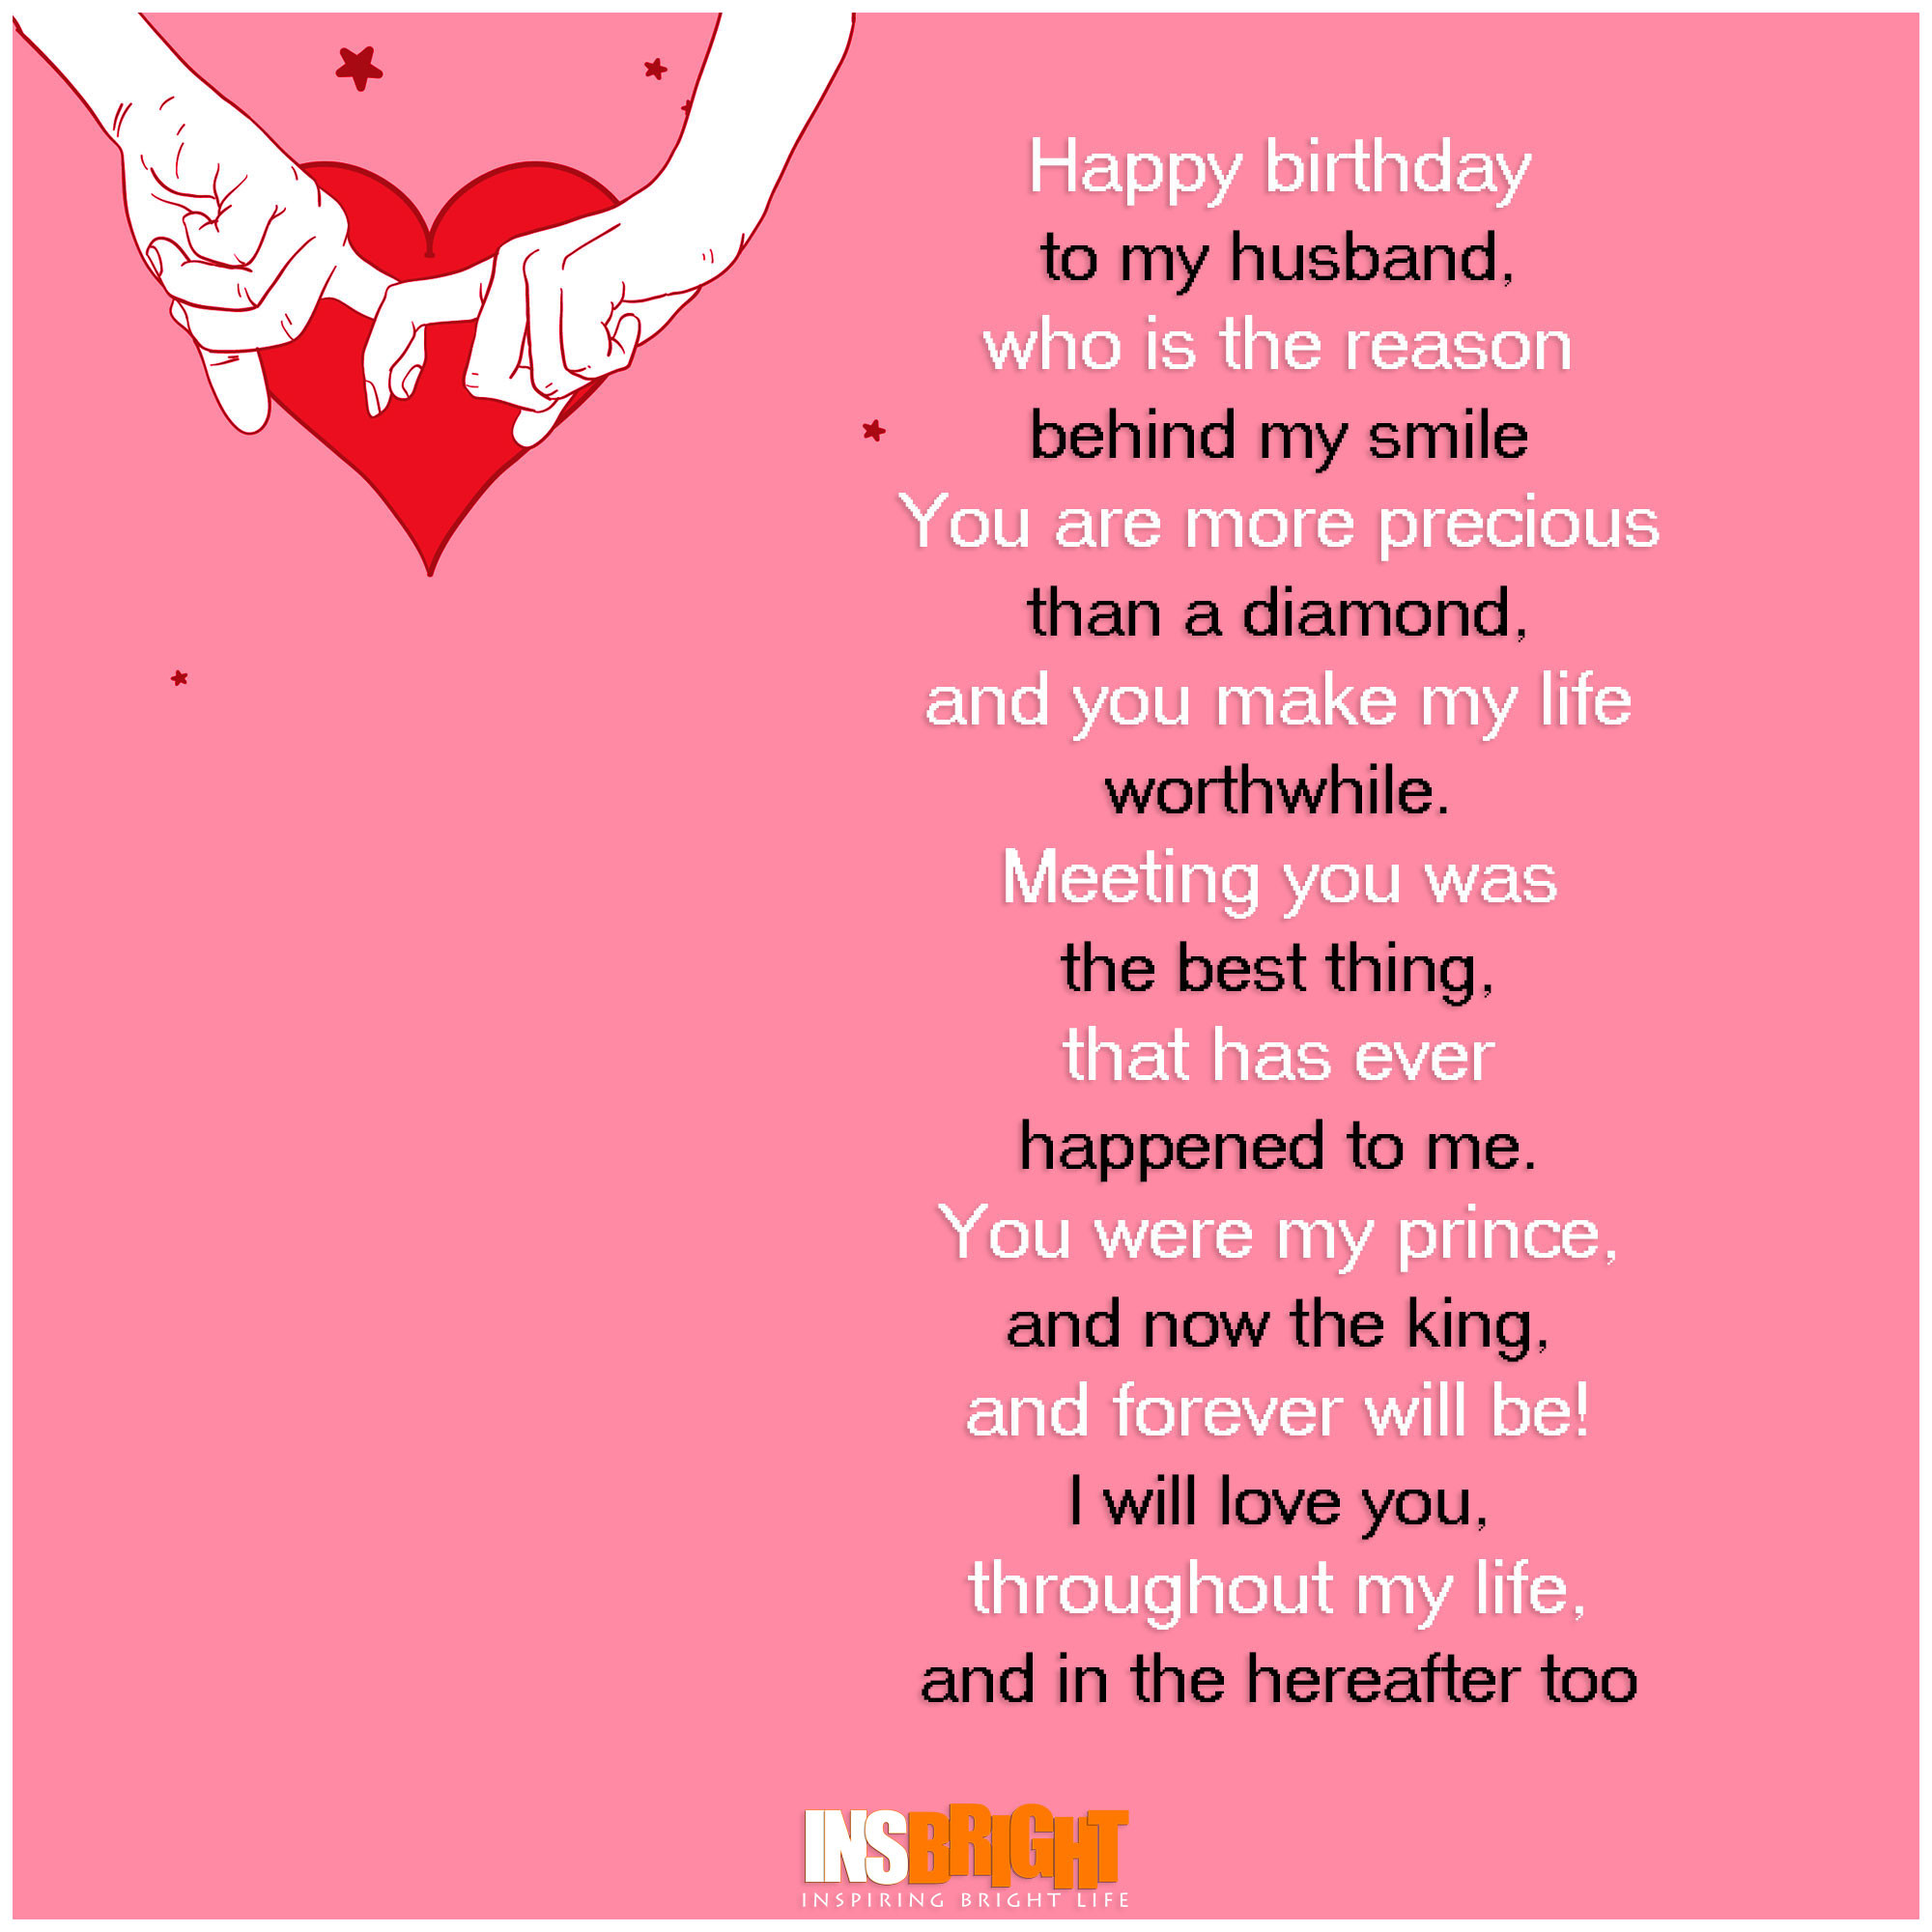 Best ideas about Husband Birthday Quotes From Wife . Save or Pin Romantic Happy Birthday Poems For Husband From Wife Now.